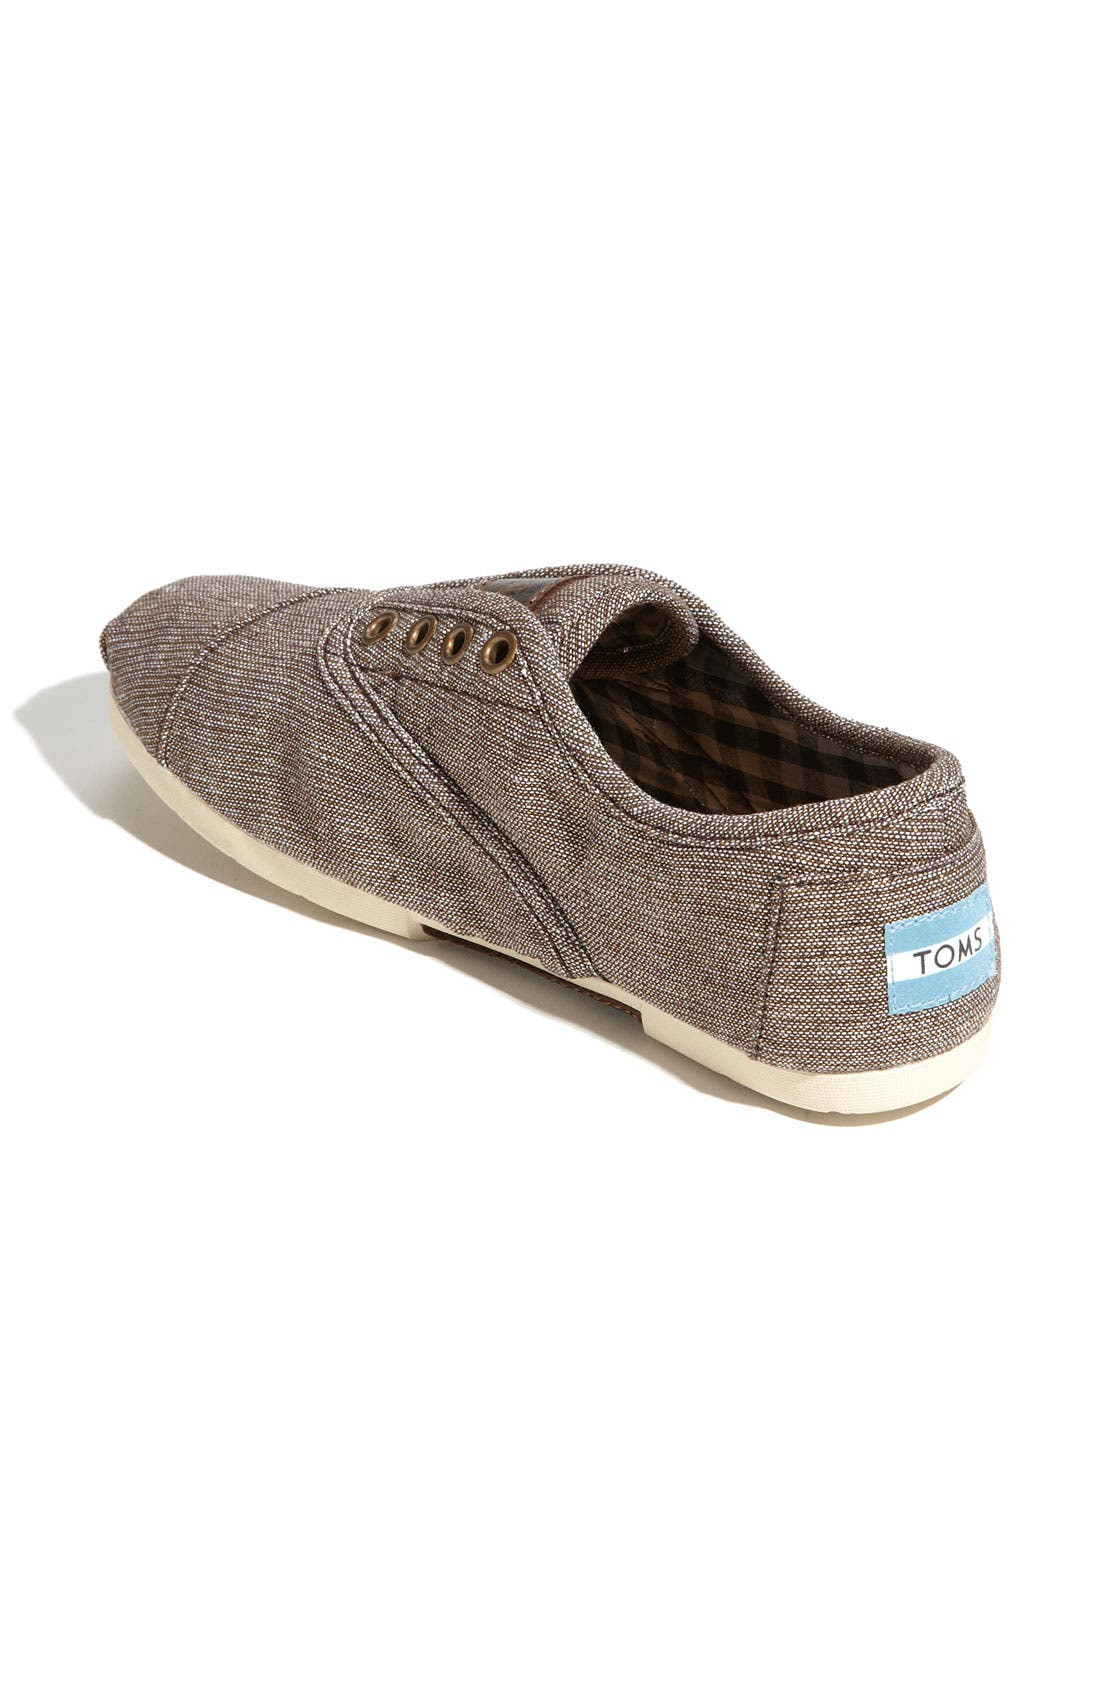 Alternate Image 2  - TOMS 'Cordones' Metallic Slip-On (Women)